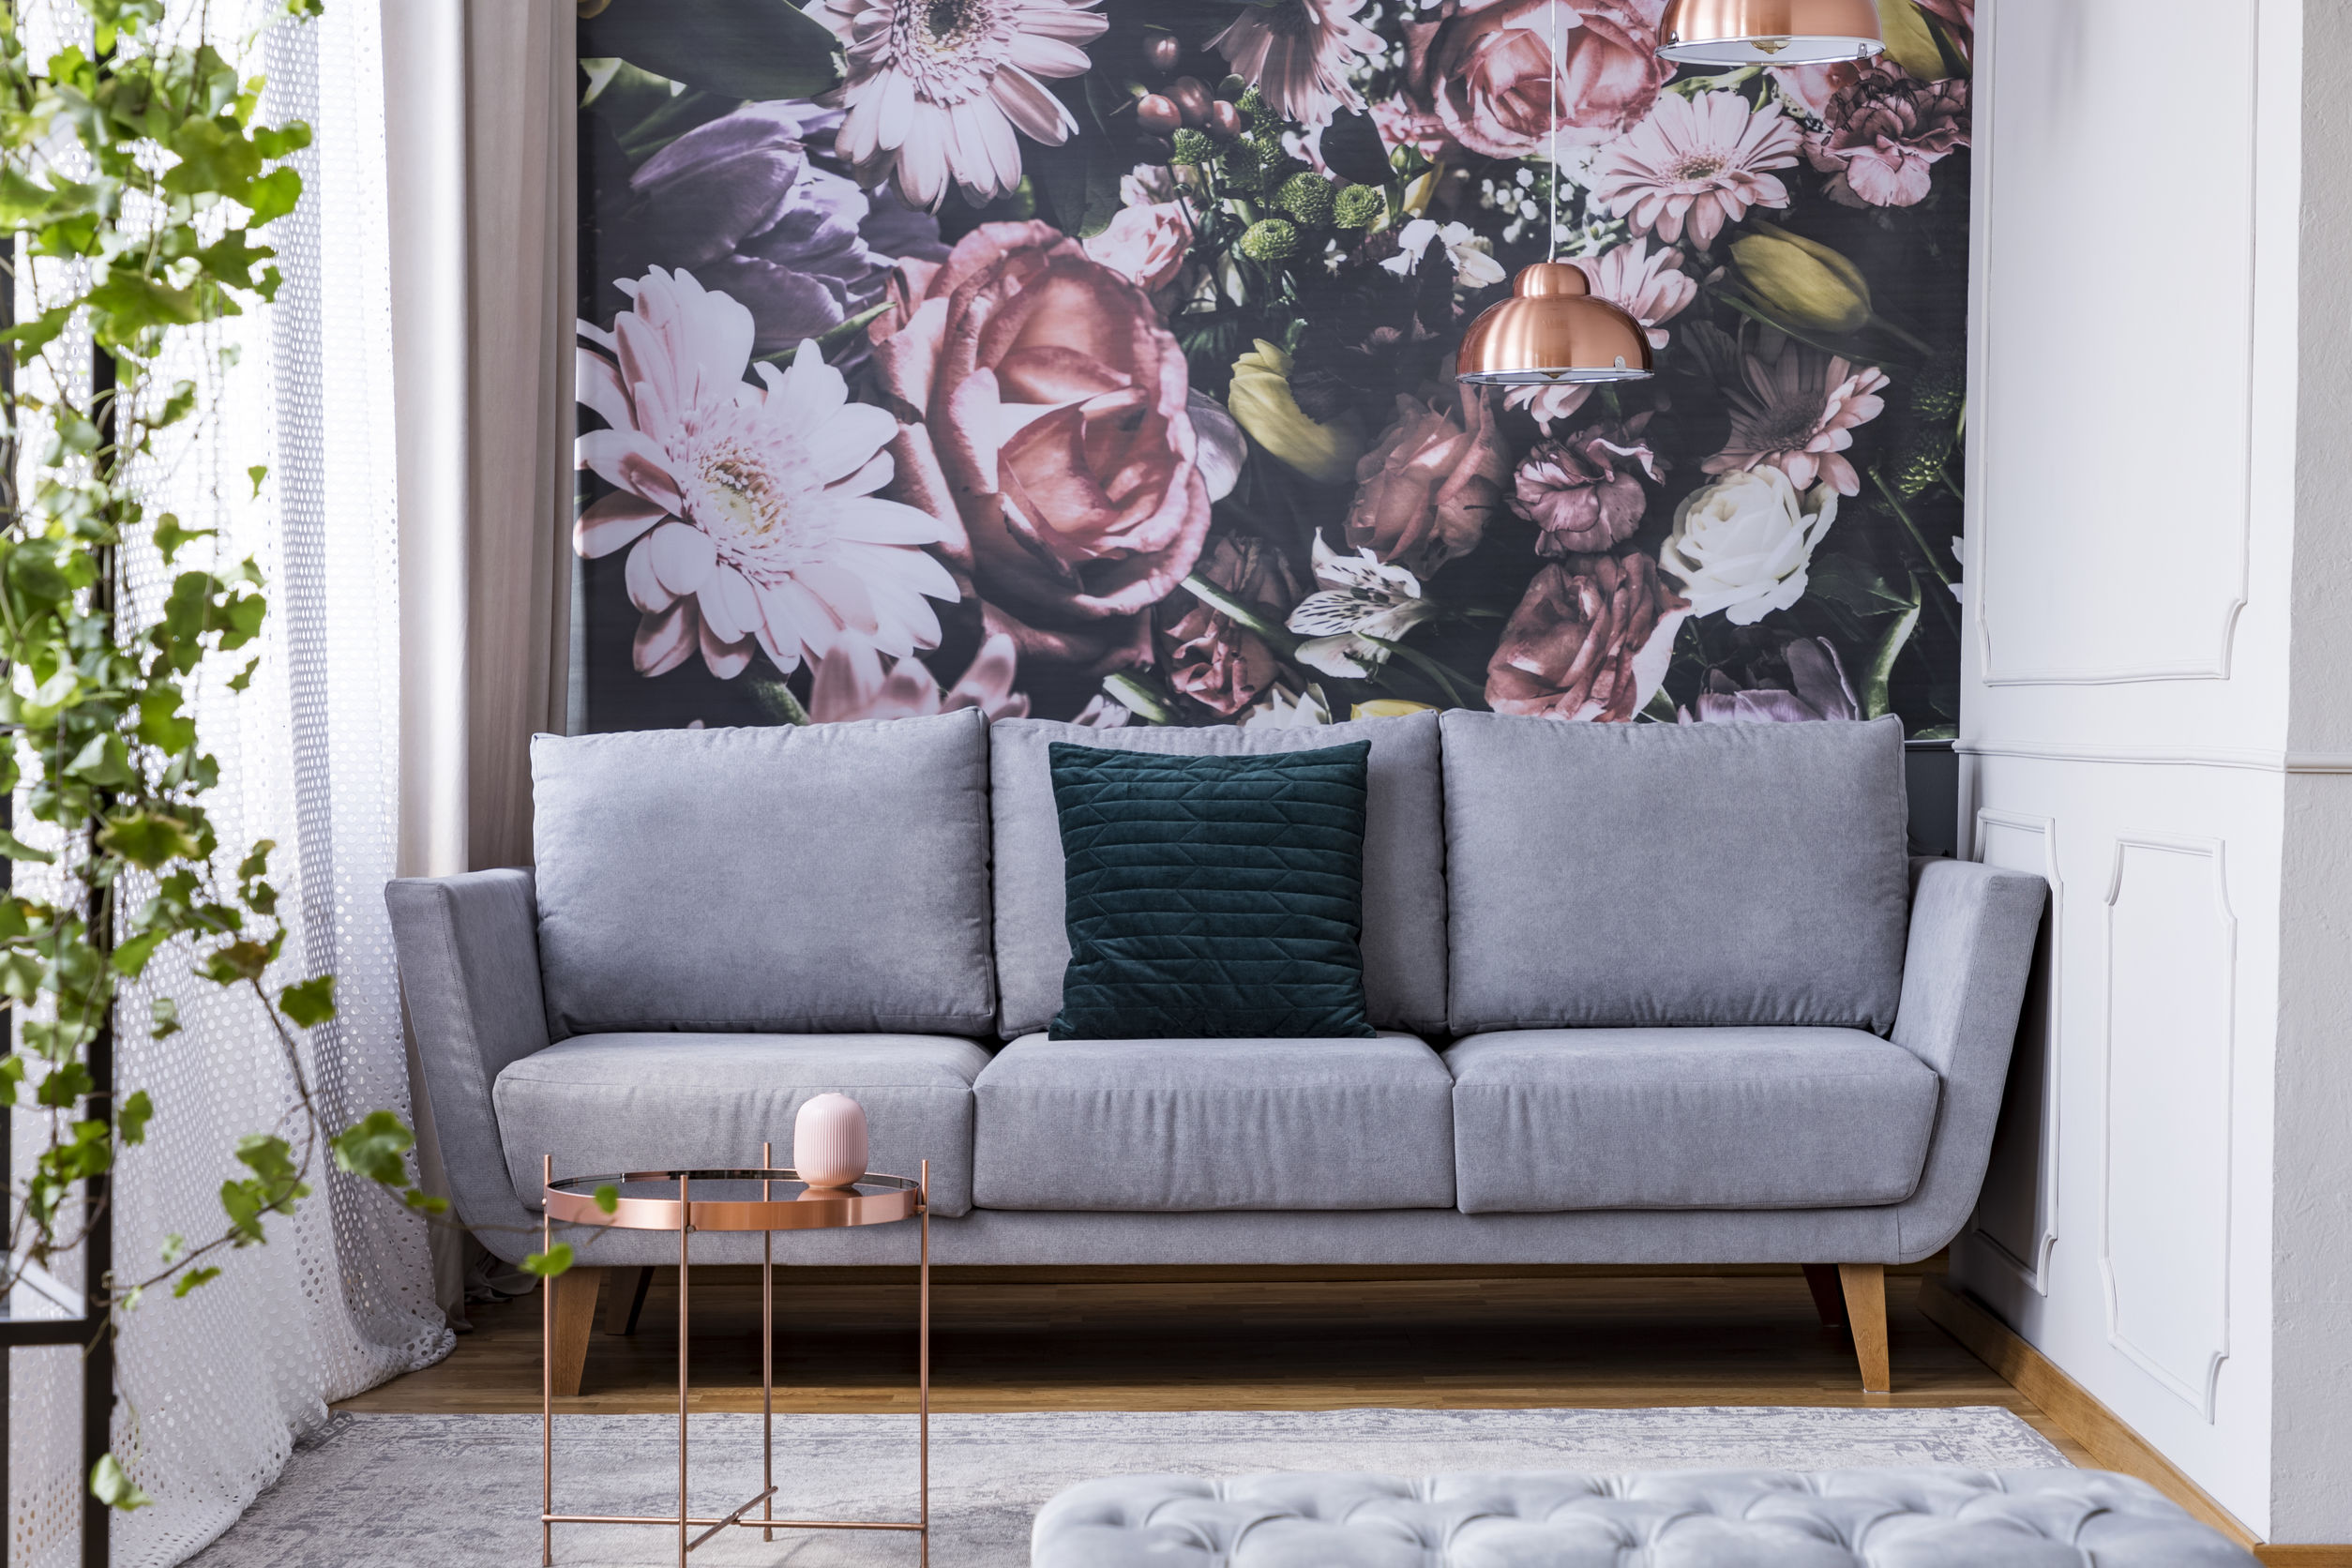 Copper table on carpet and green pillow on grey couch in flowers